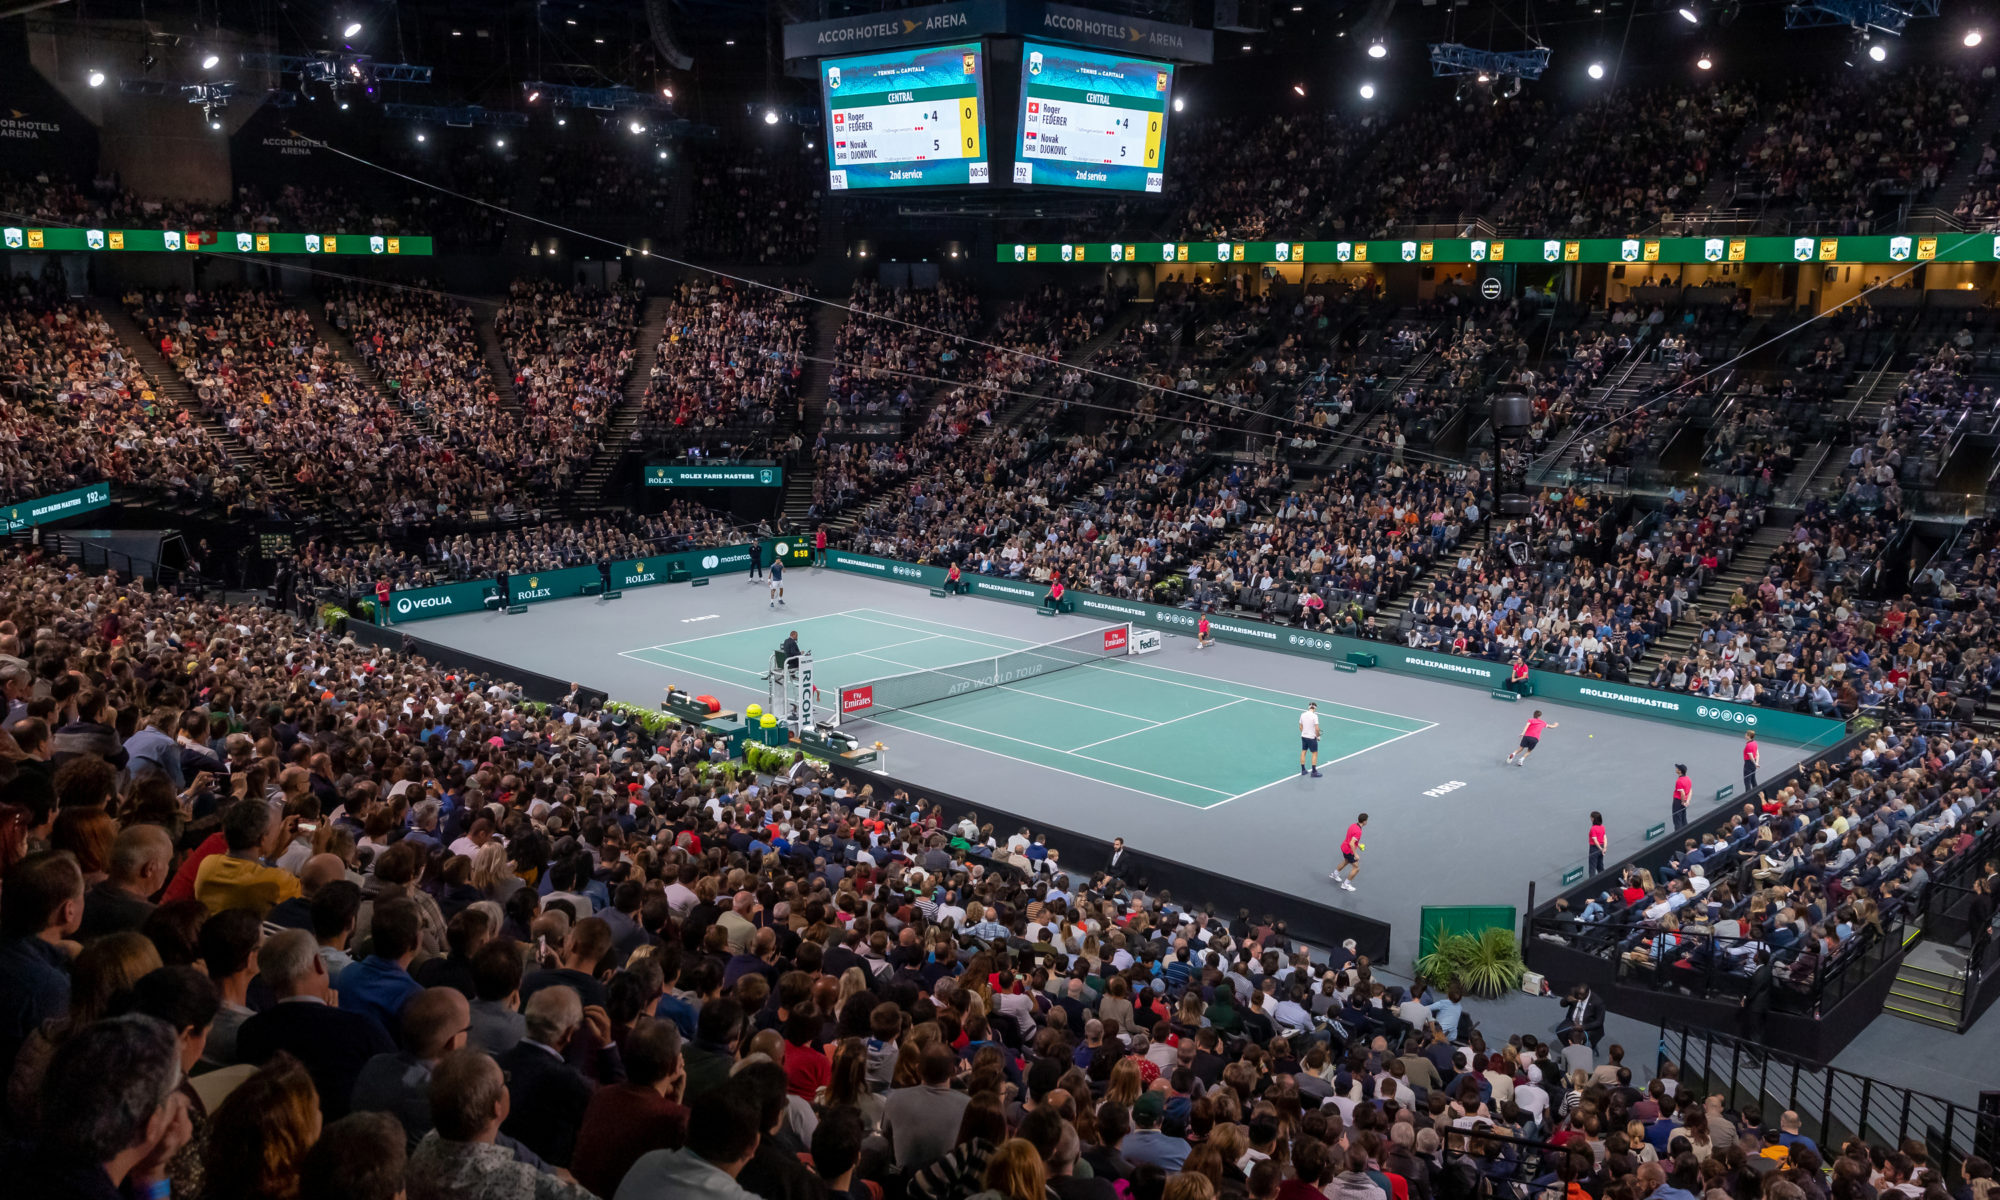 Rolex paris masters hospitality hospitalite corporate luxe entreprise master club accorhotels billetterie